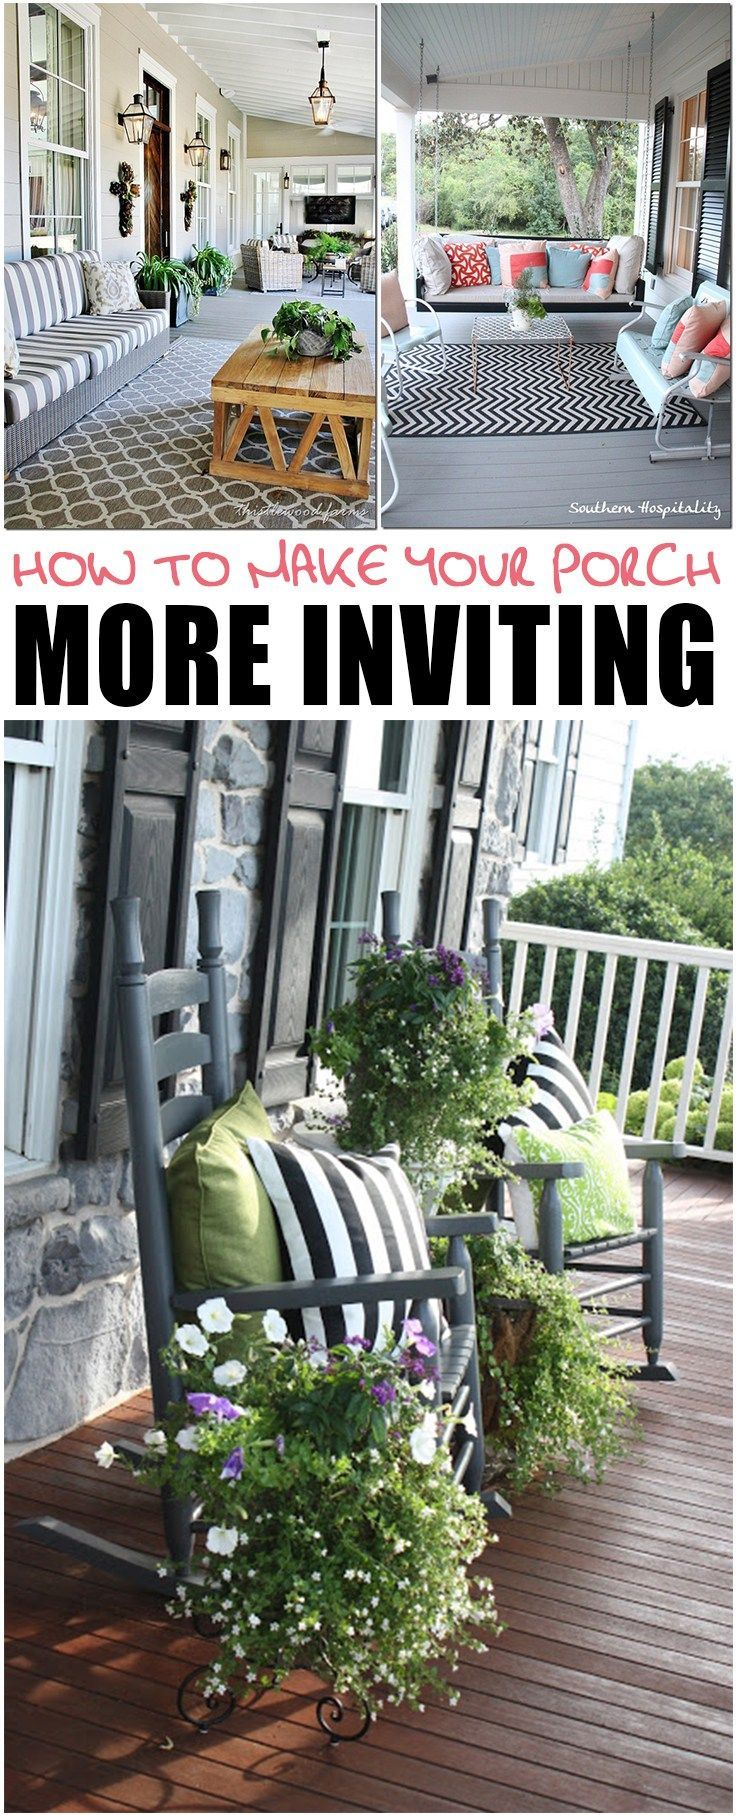 Awesome How To Make Your Porch More Inviting Good Ideas